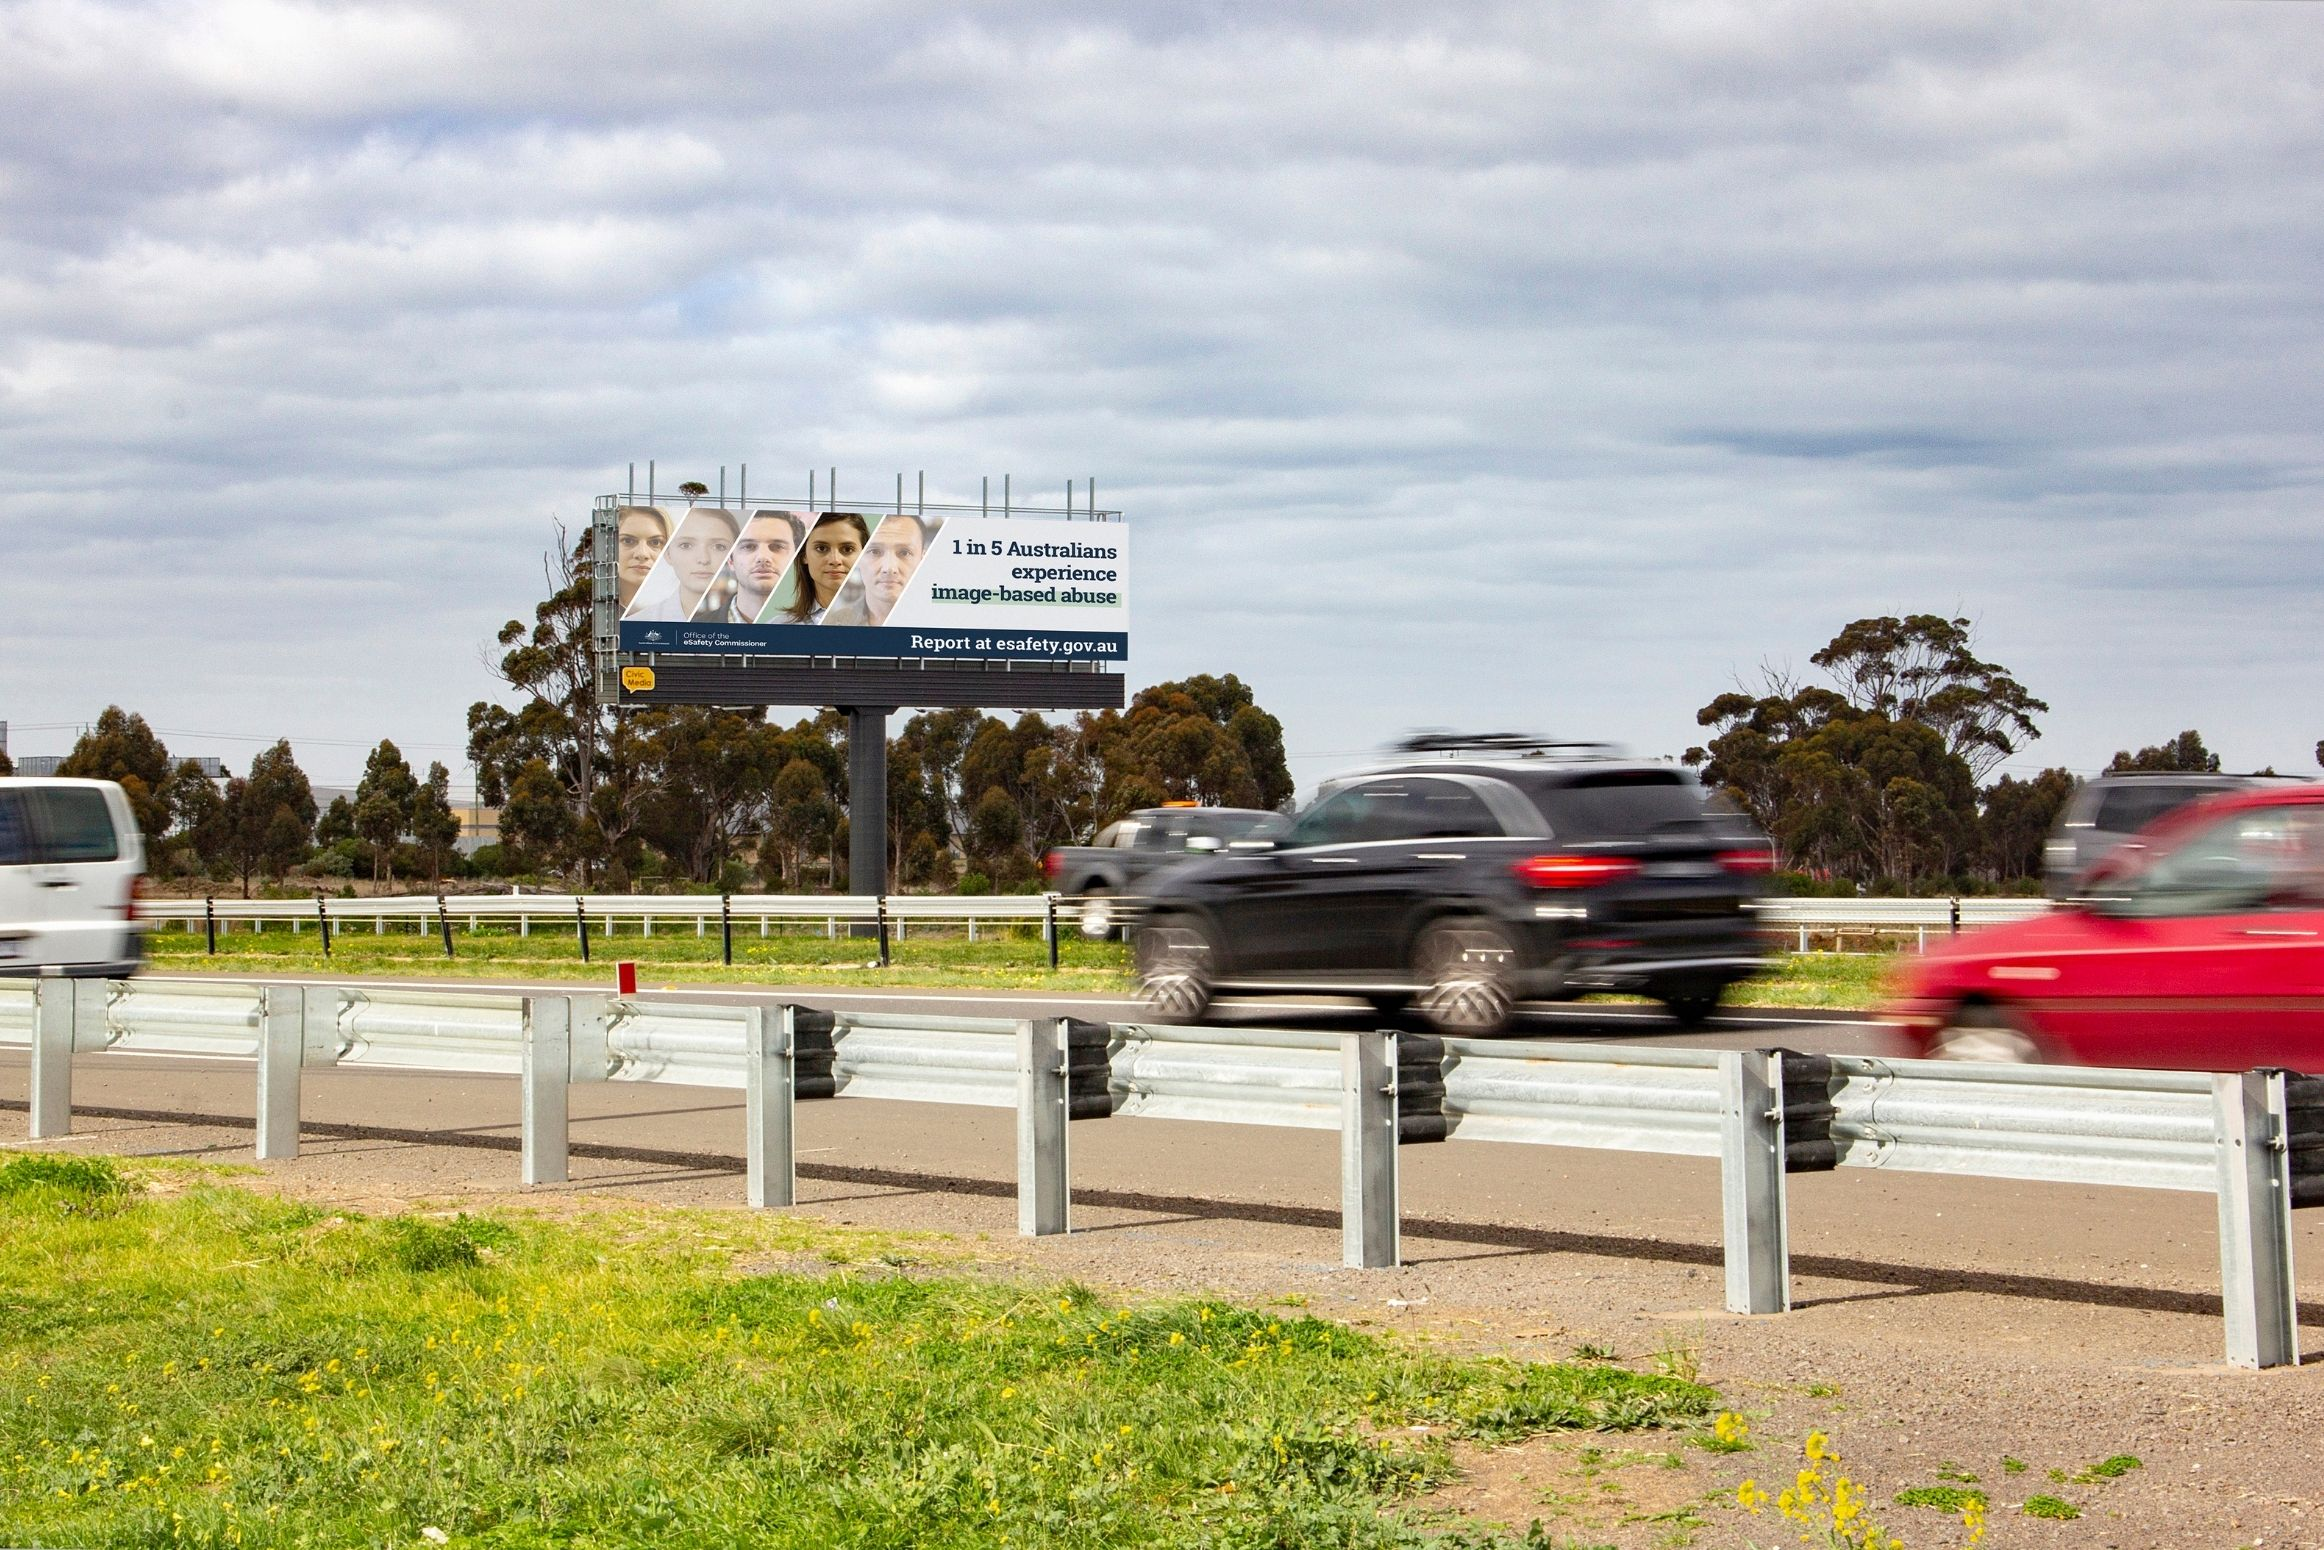 A digital billboard displaying some outdoor advertising to oncoming traffic